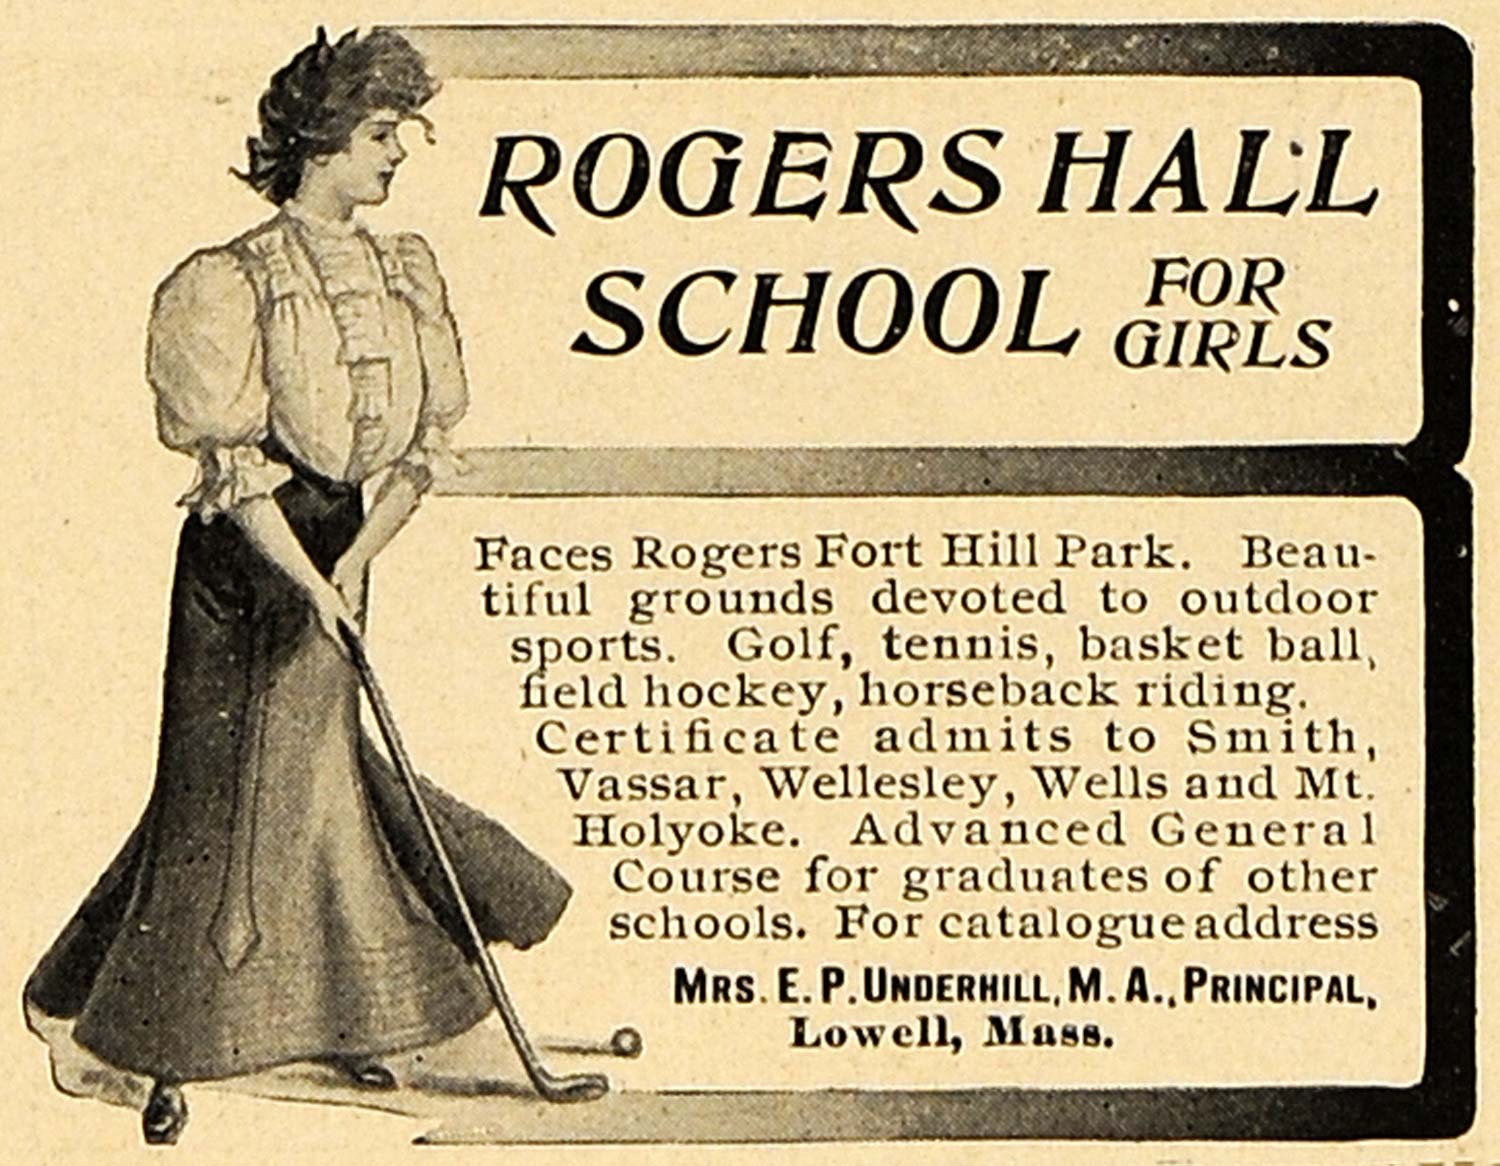 1906 Ad Rogers Hall School Girls Golfing Massachusetts - ORIGINAL CL9